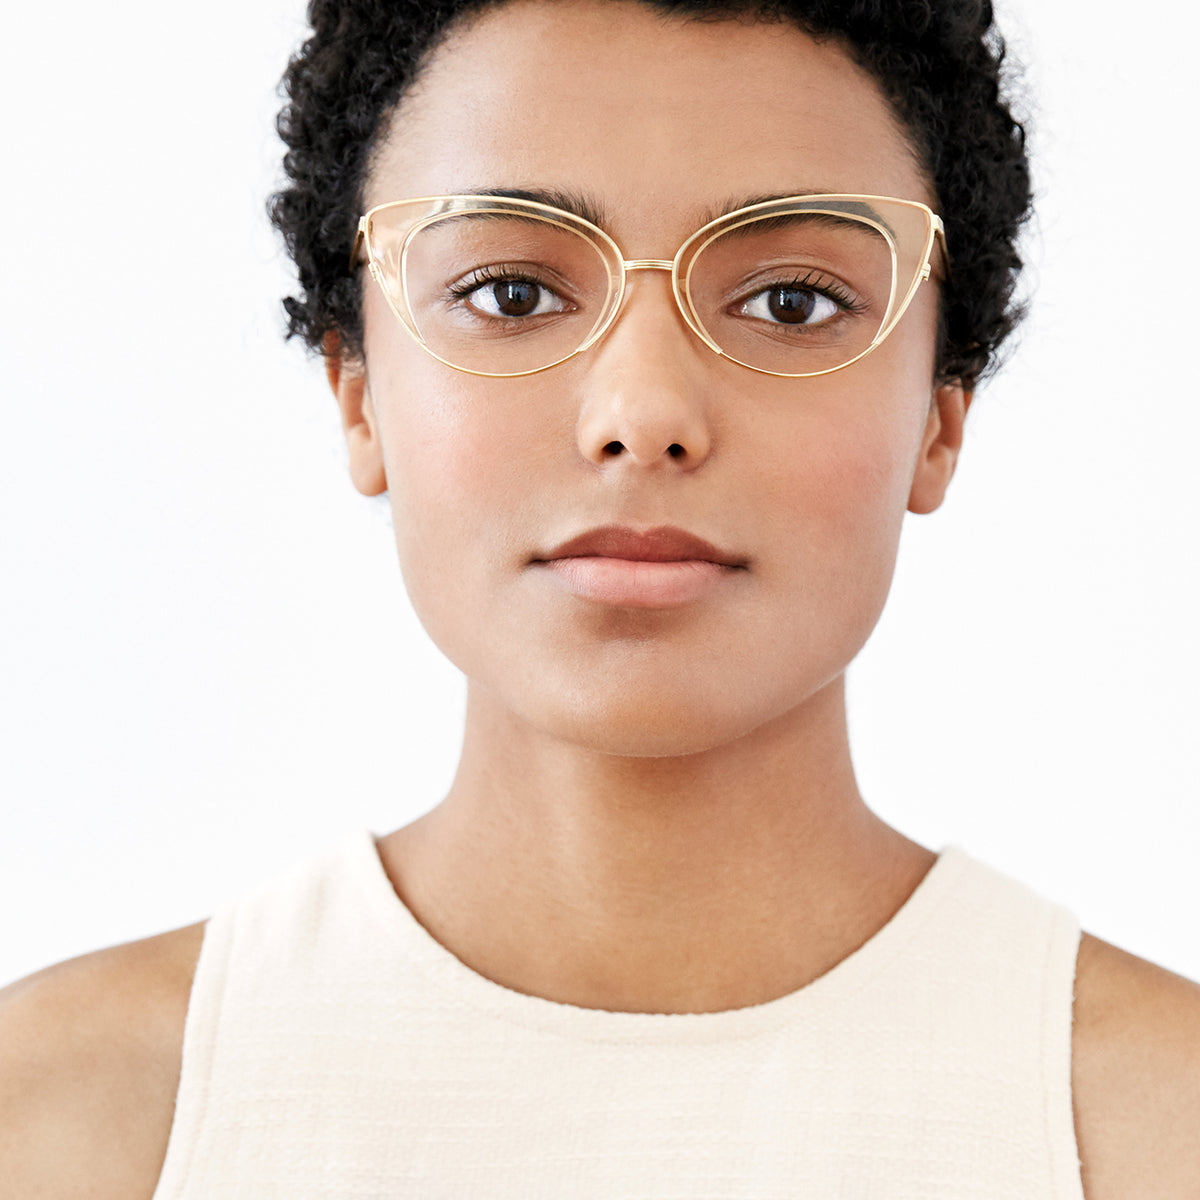 CLARA | Champagne + 18K Titanium and handcrafted acetate cat-eye Optical frames.